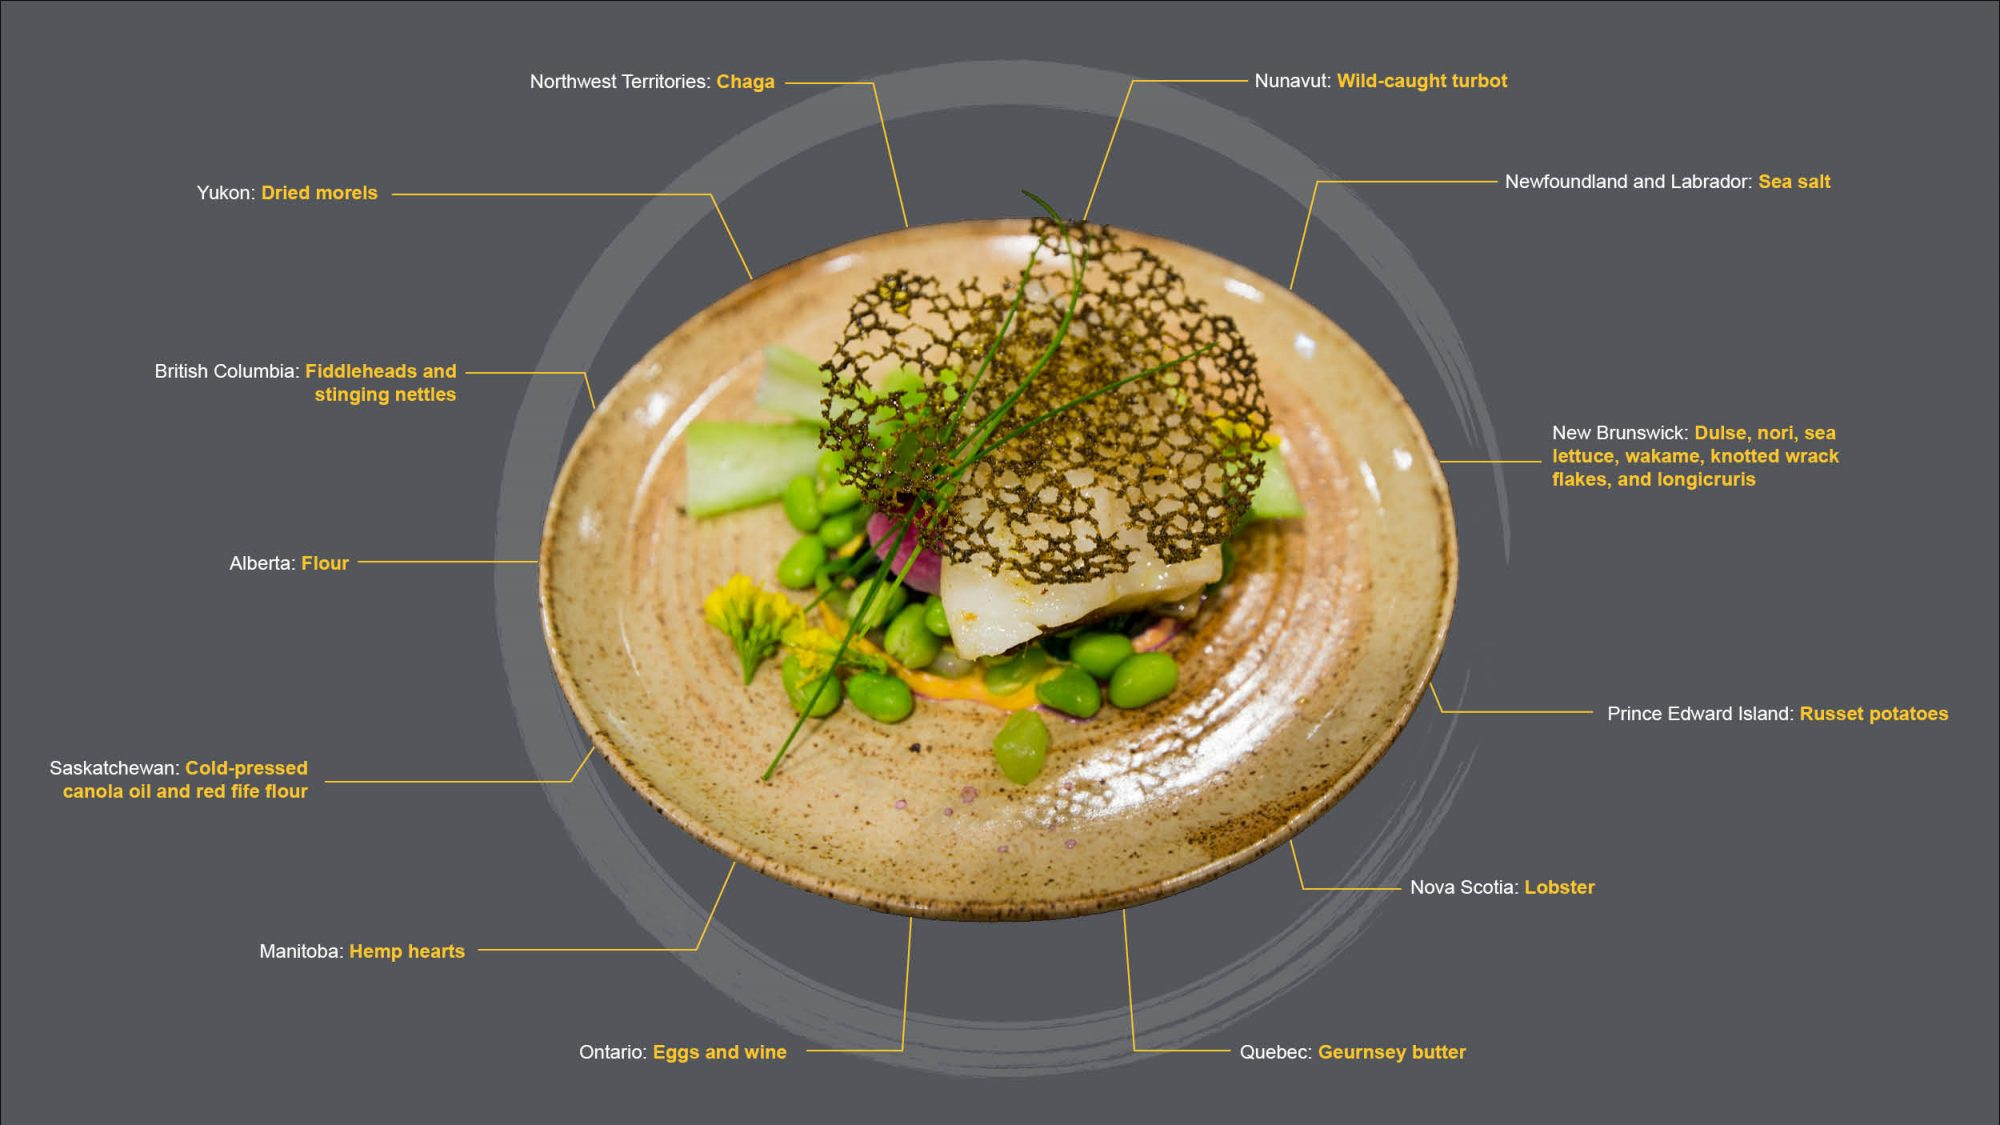 A diagram including an image Chef Laura's plate, with text references to each ingredient and where they are from. Ingredient lists at the bottom of the webpage.